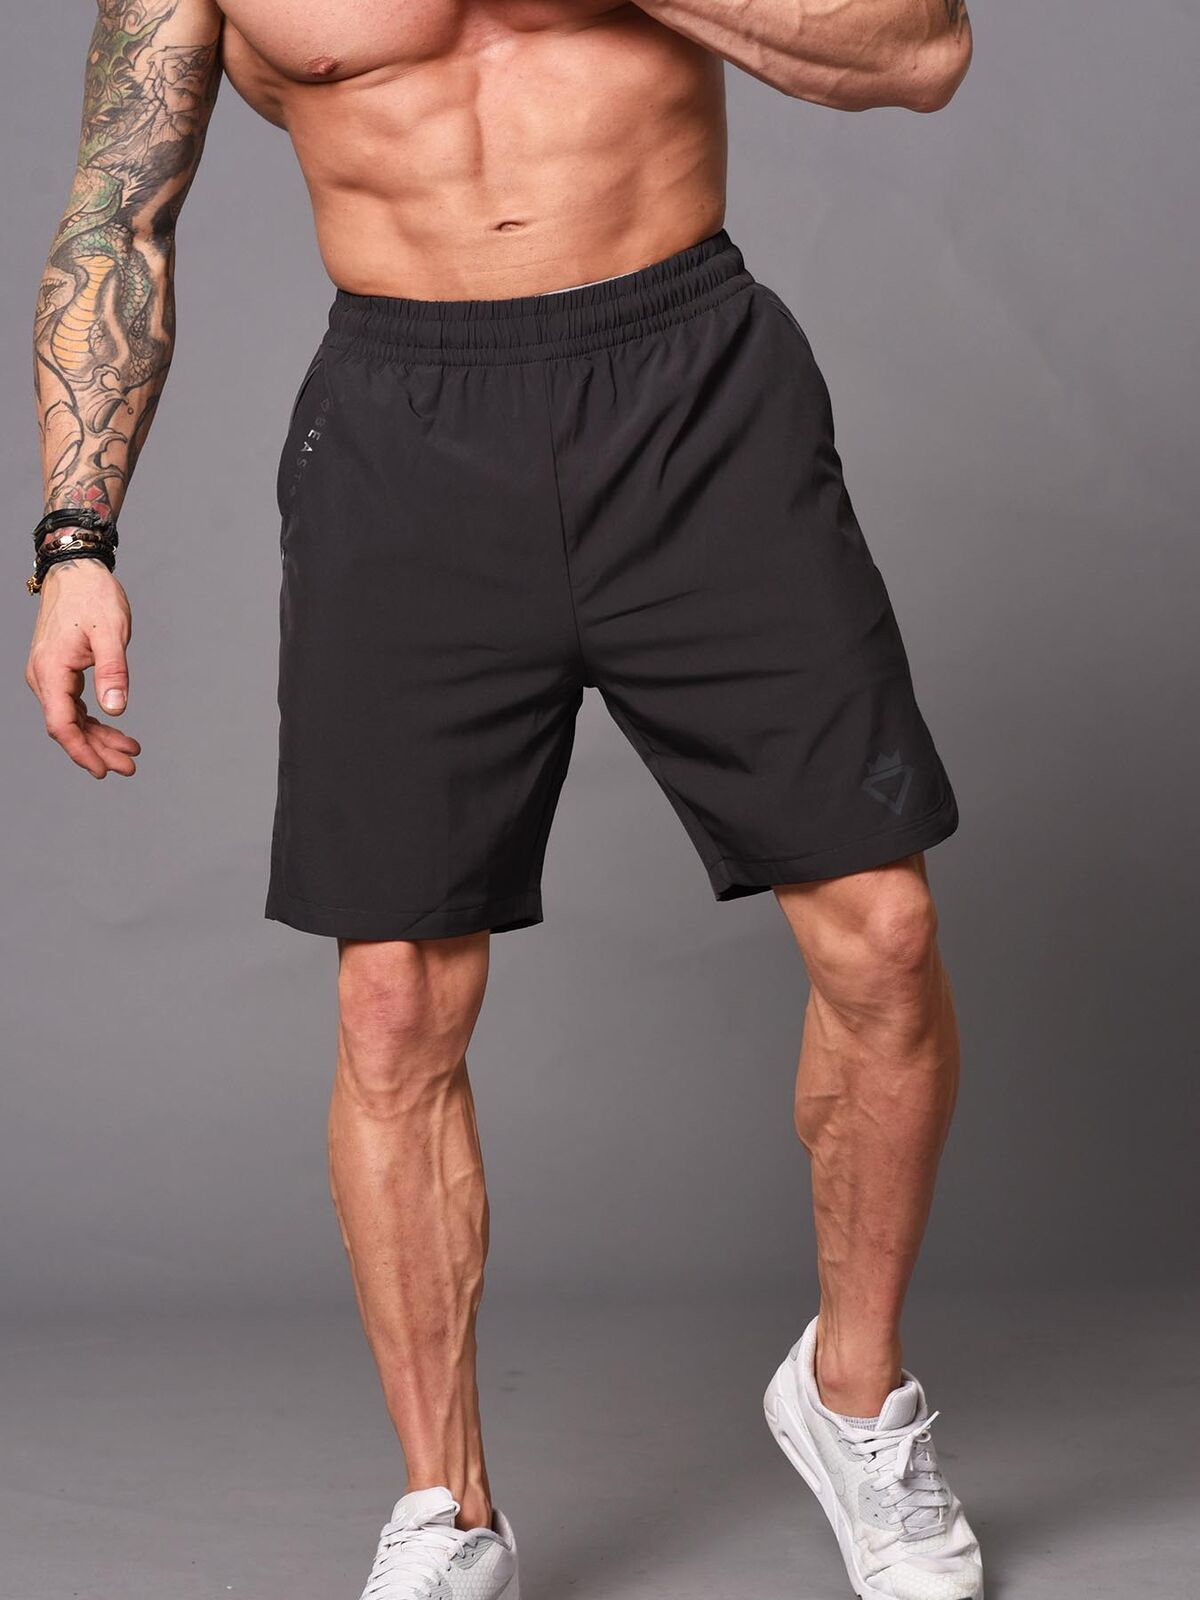 Beast Bodybuilding Shorts - Dark Grey